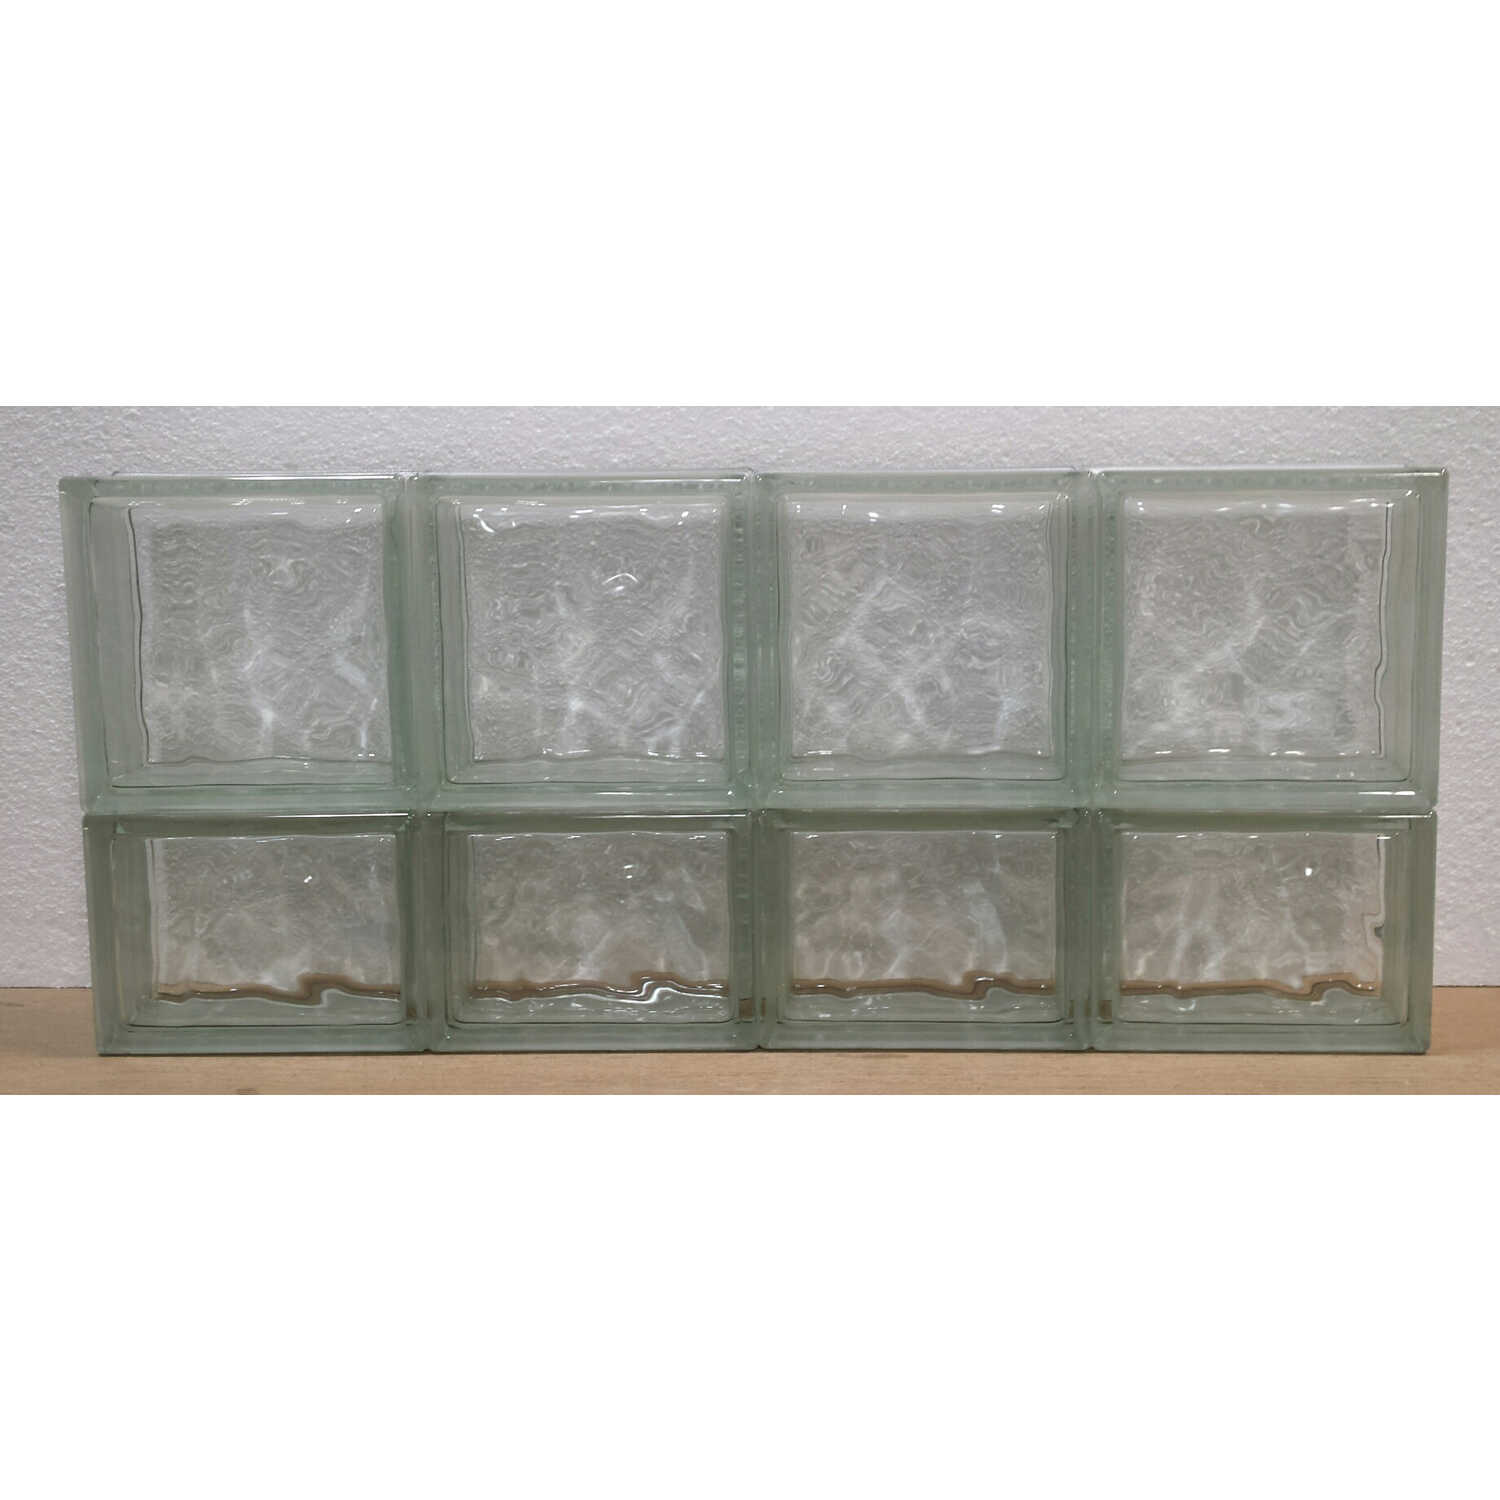 Clear Choice  13.5 in. H x 31 in. W x 3 in. D Panel